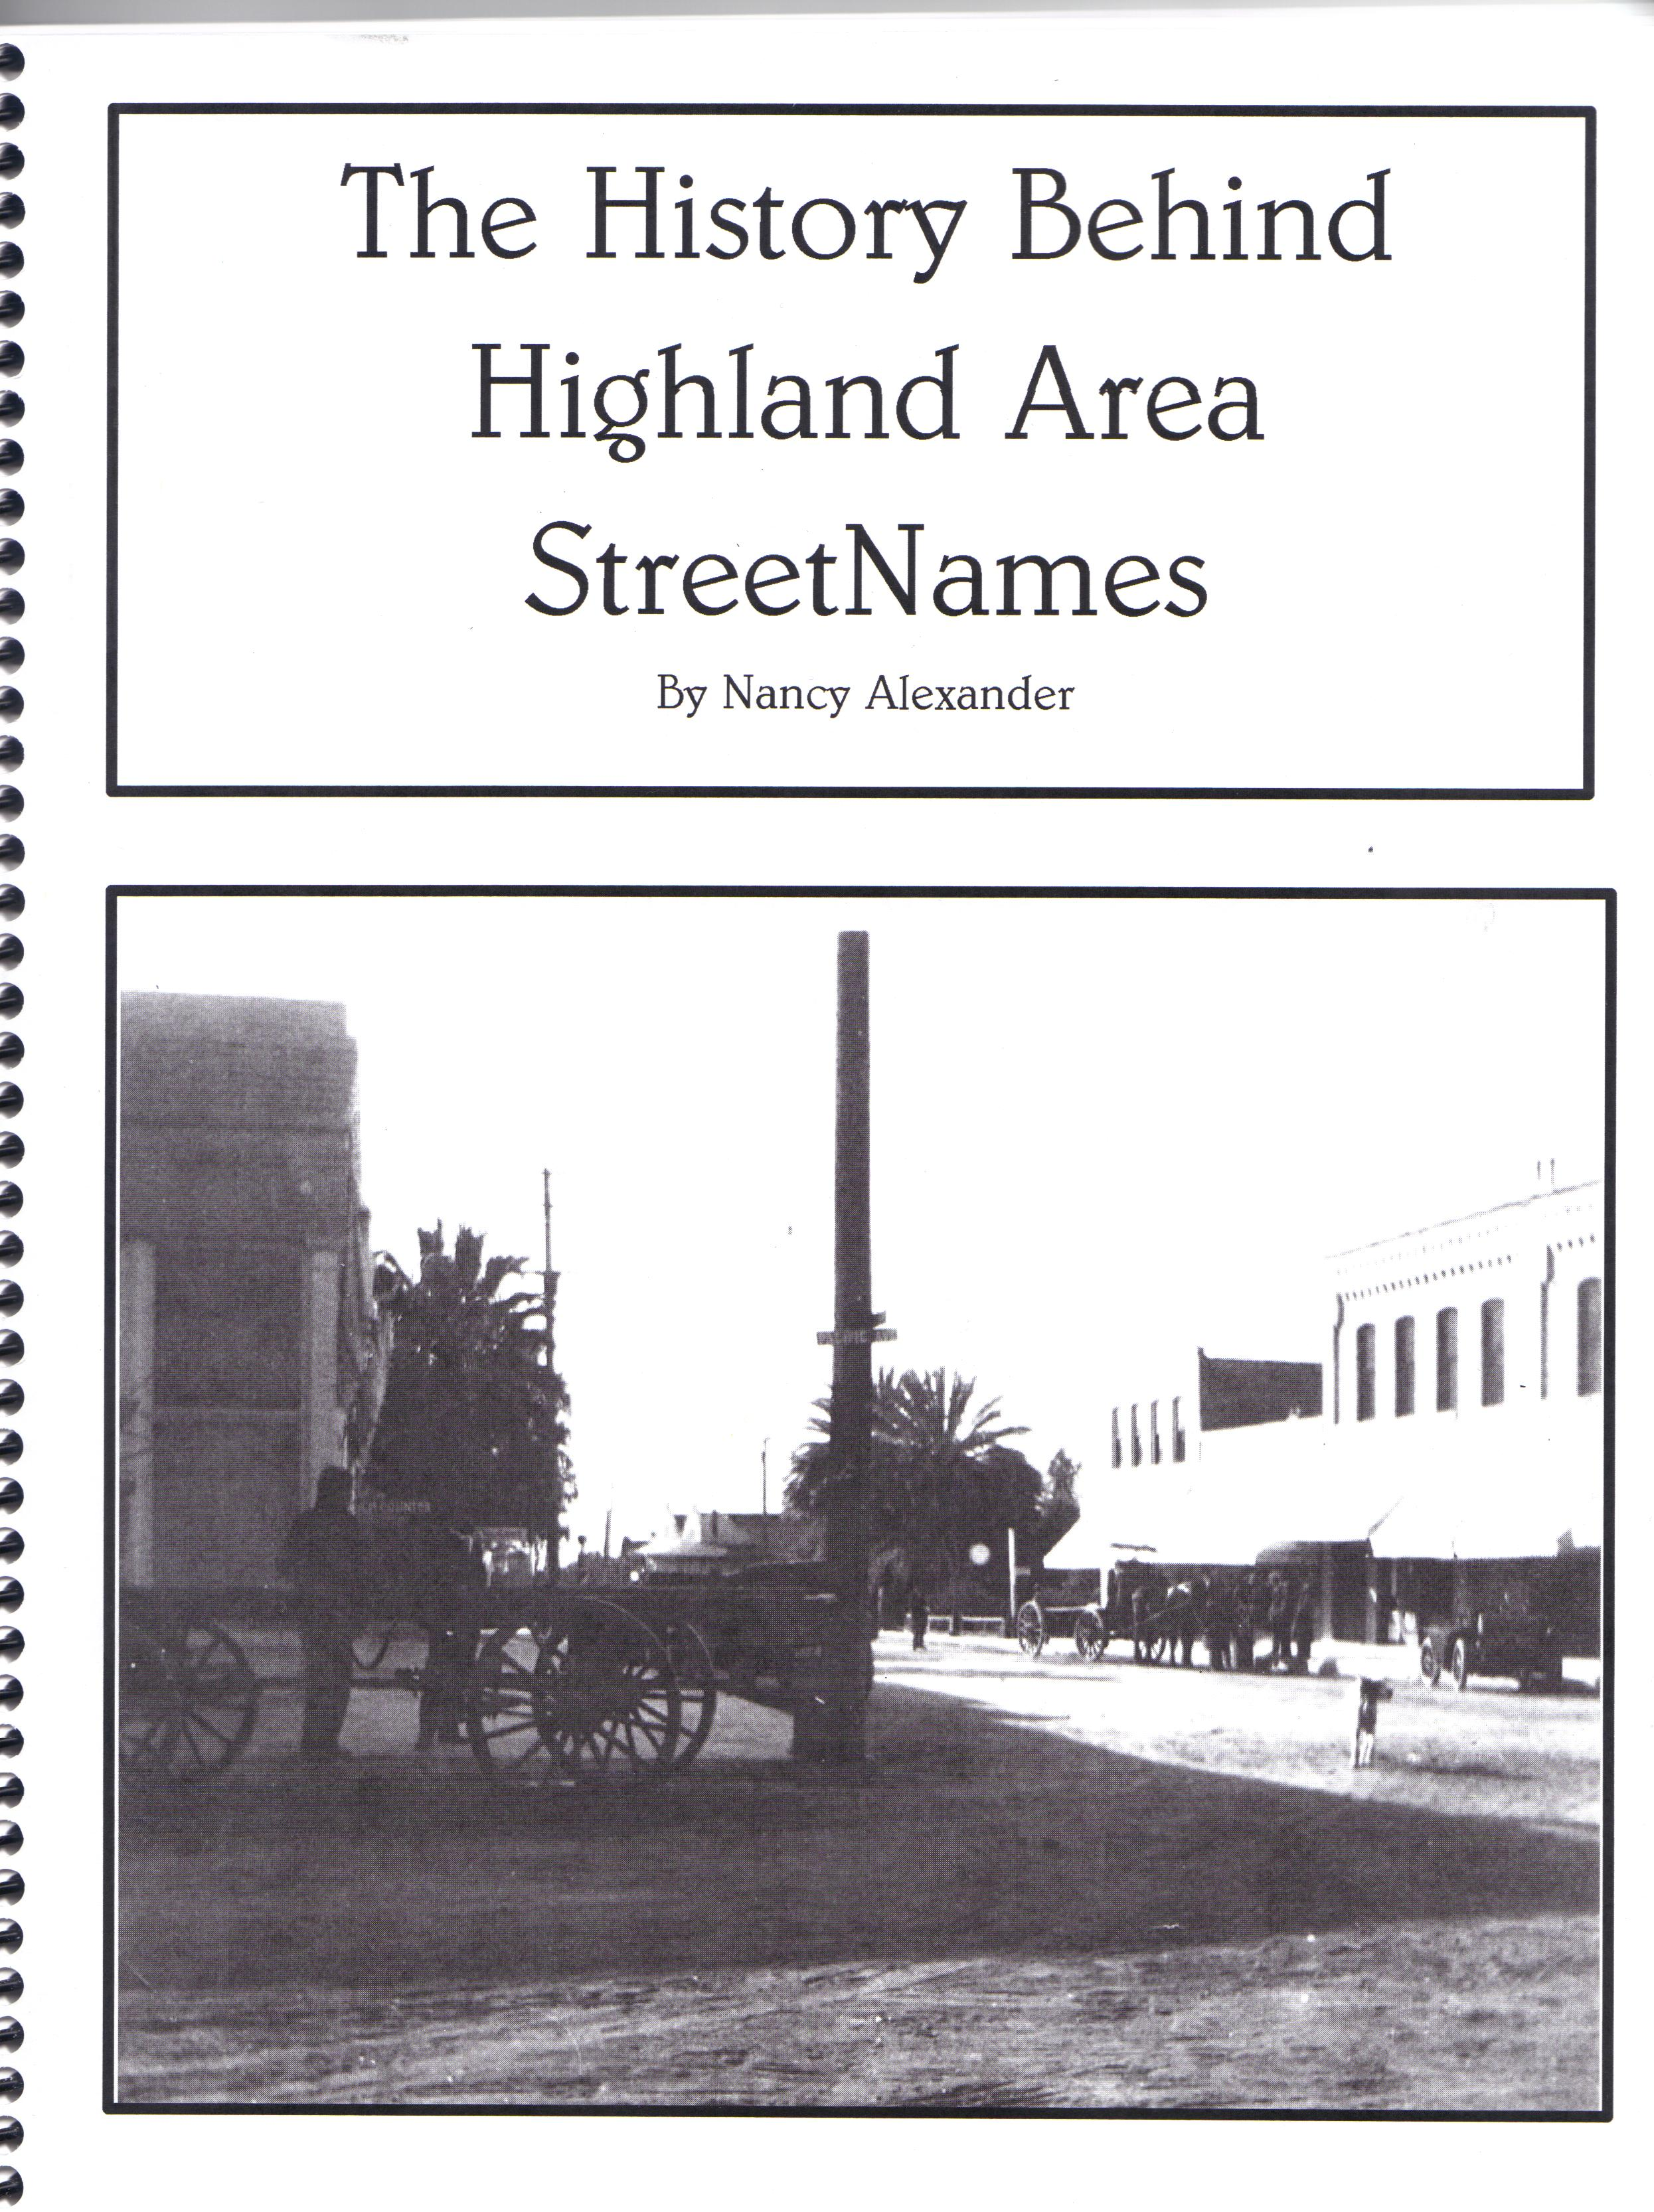 The History Behind Highland Area Street Names